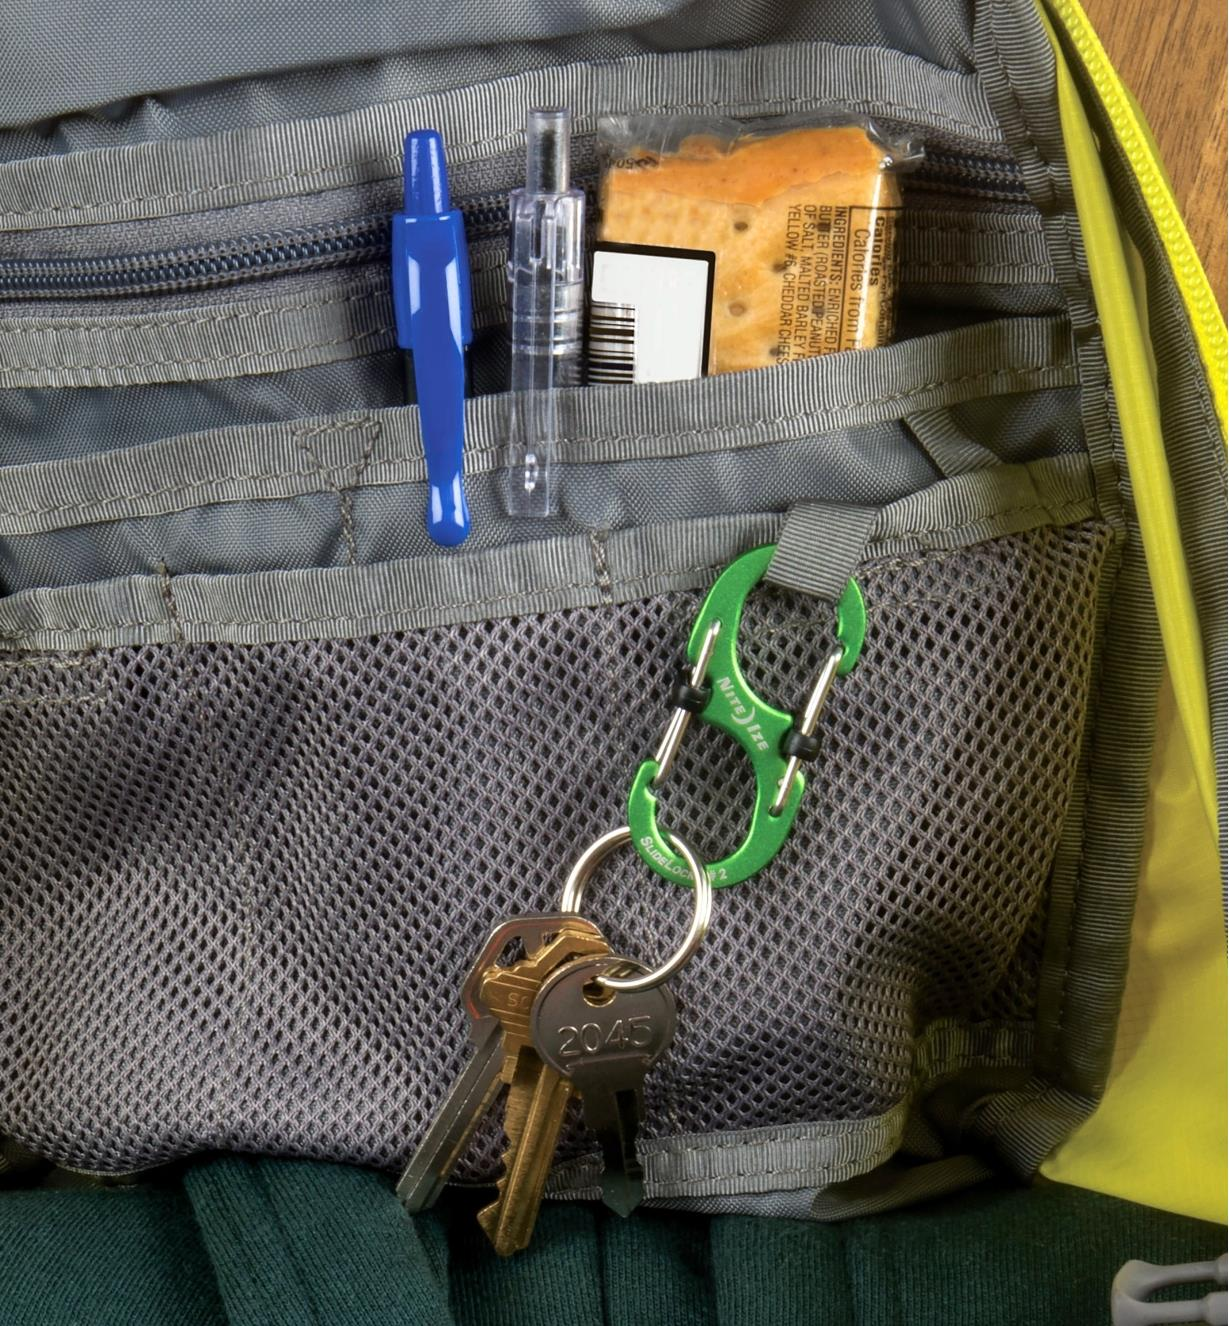 Aluminum S-Biner carabiner with locking gate closures clipped inside a backpack, holding keys